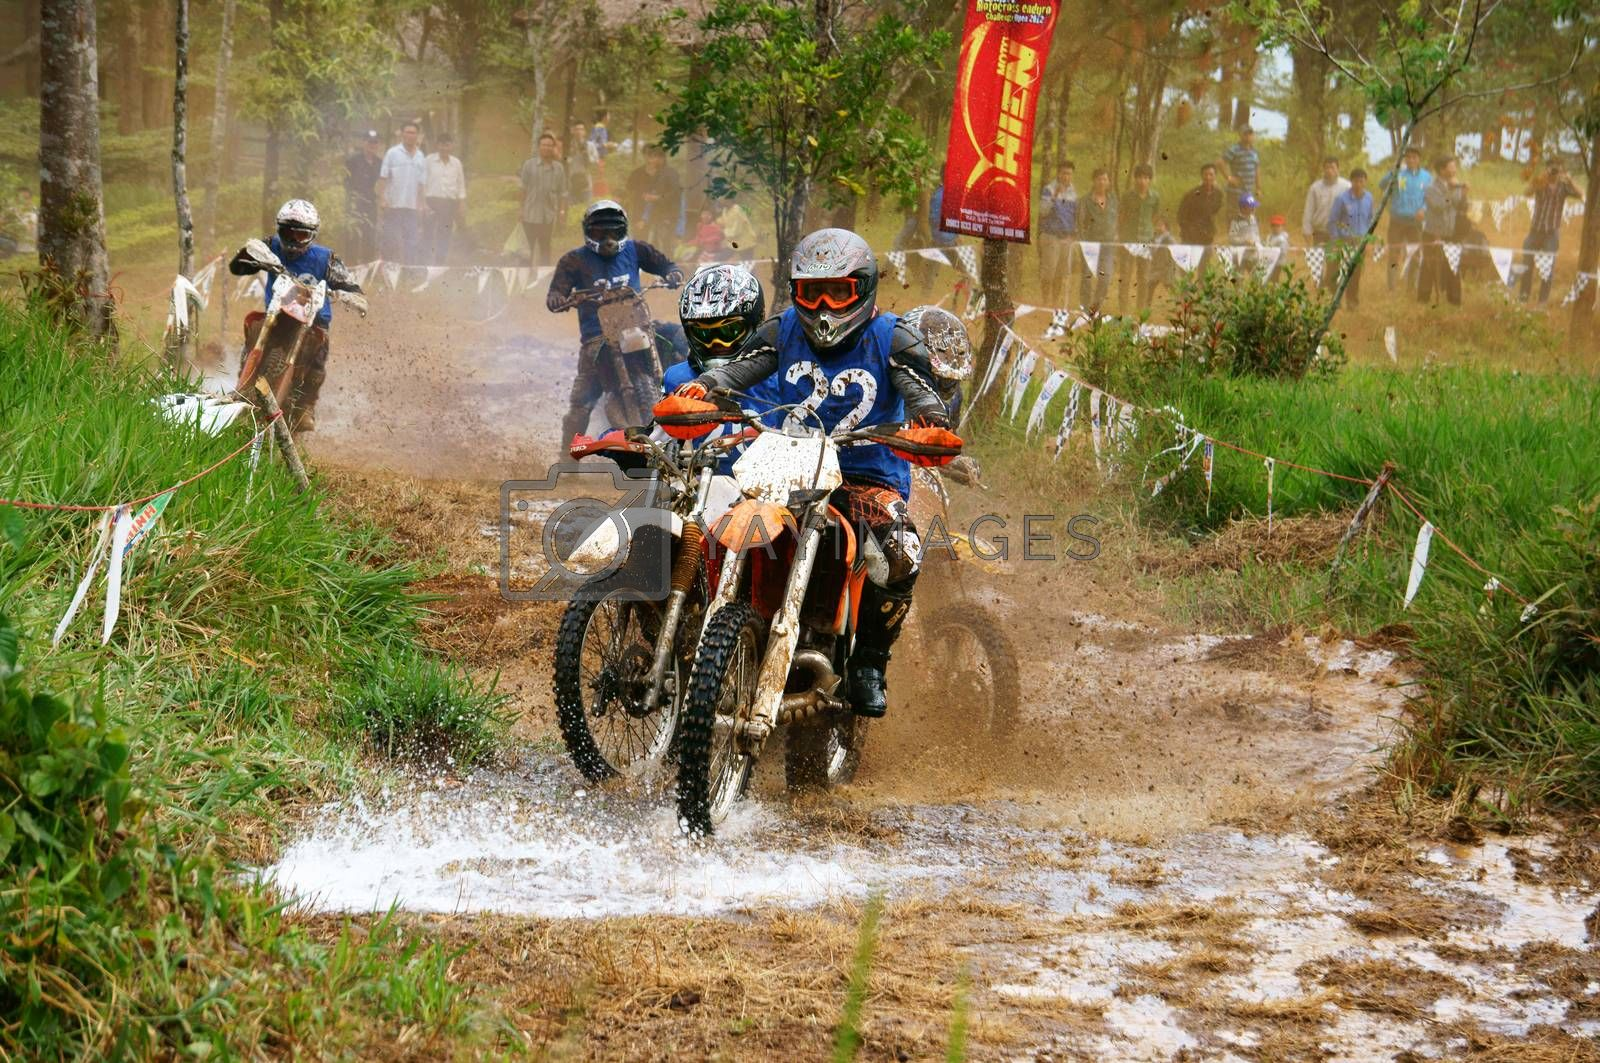 BAO LOC, VIET NAM- DECEMBER 23:  Racer in activity at motorcycle race hole on Bao Loc, Viet Nam, they try to across a marshy stretch of road with violent competition in December 23, 2012